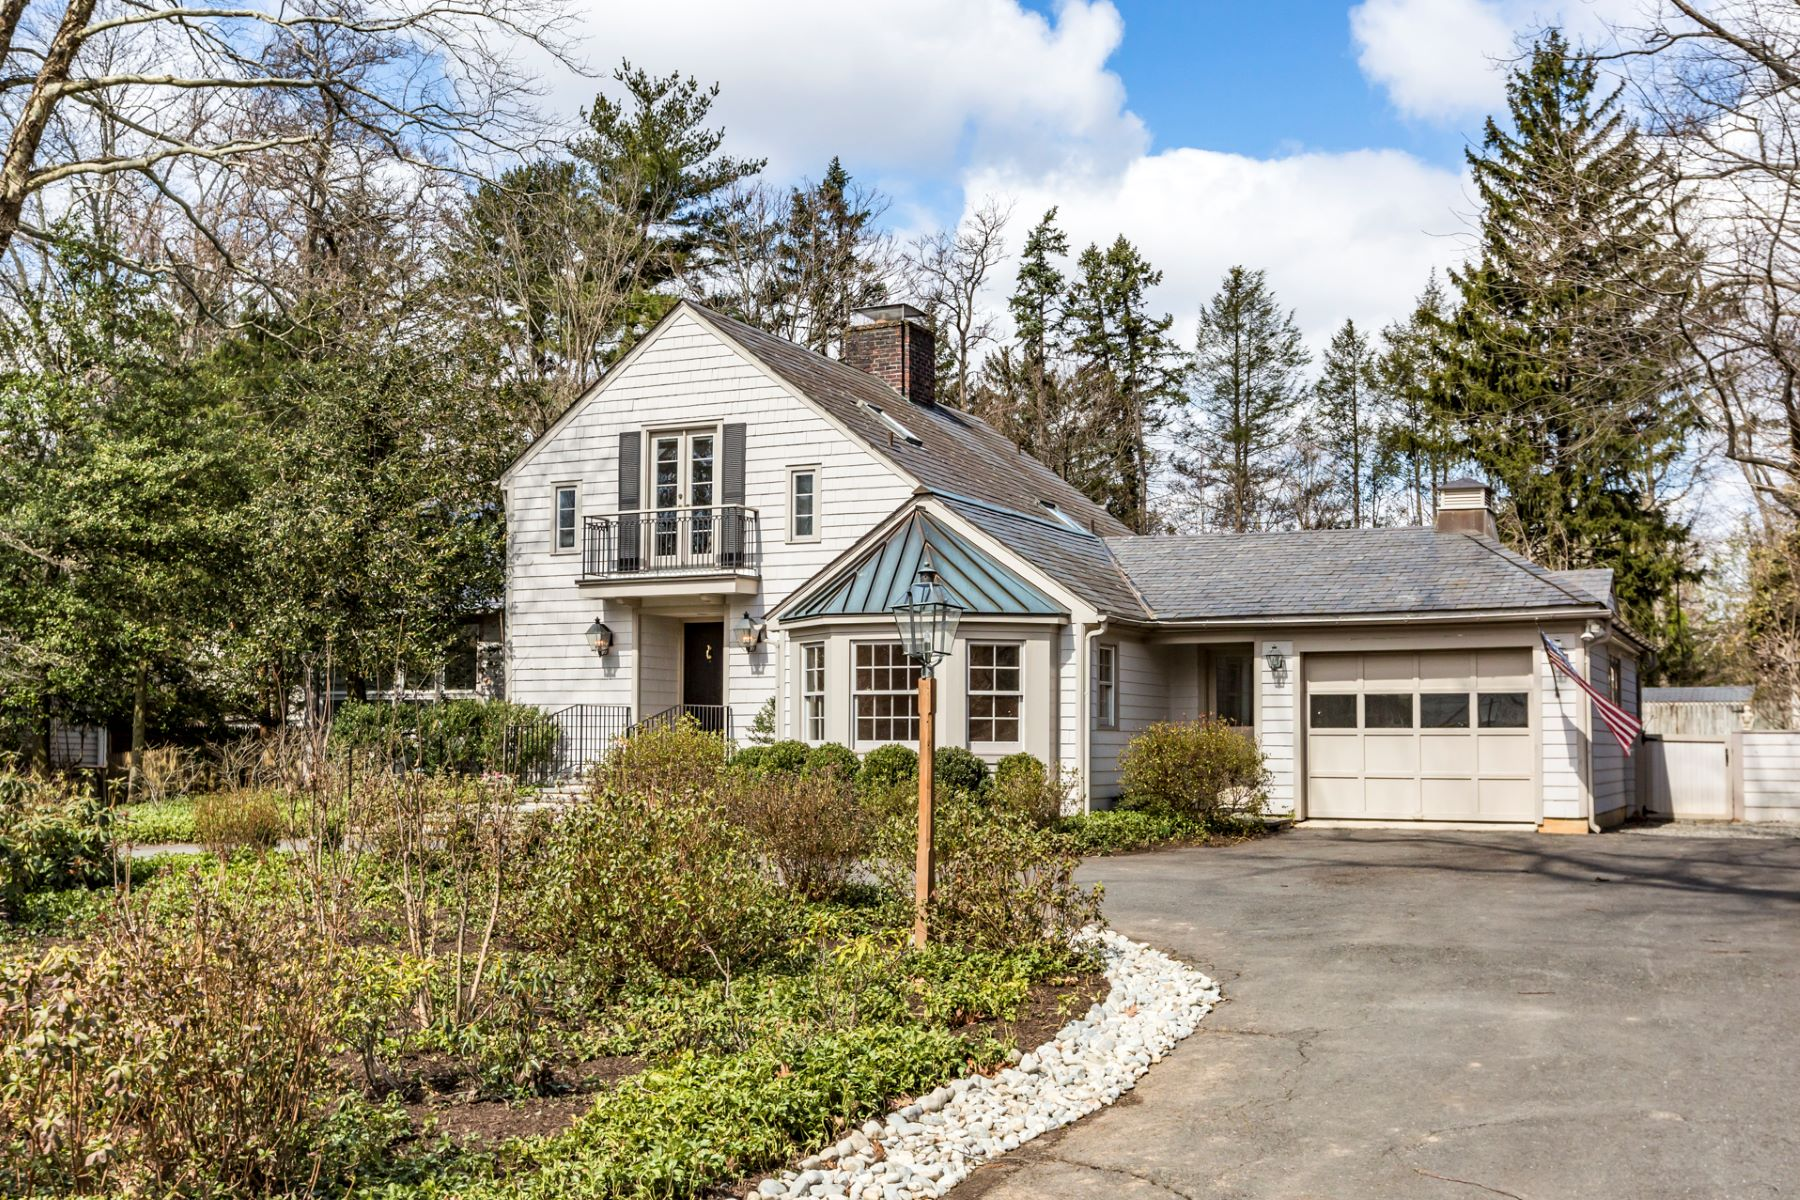 Single Family Home for Sale at Light-Hearted in a Beloved Western Section Enclave 7 Armour Road, Princeton, New Jersey 08540 United States